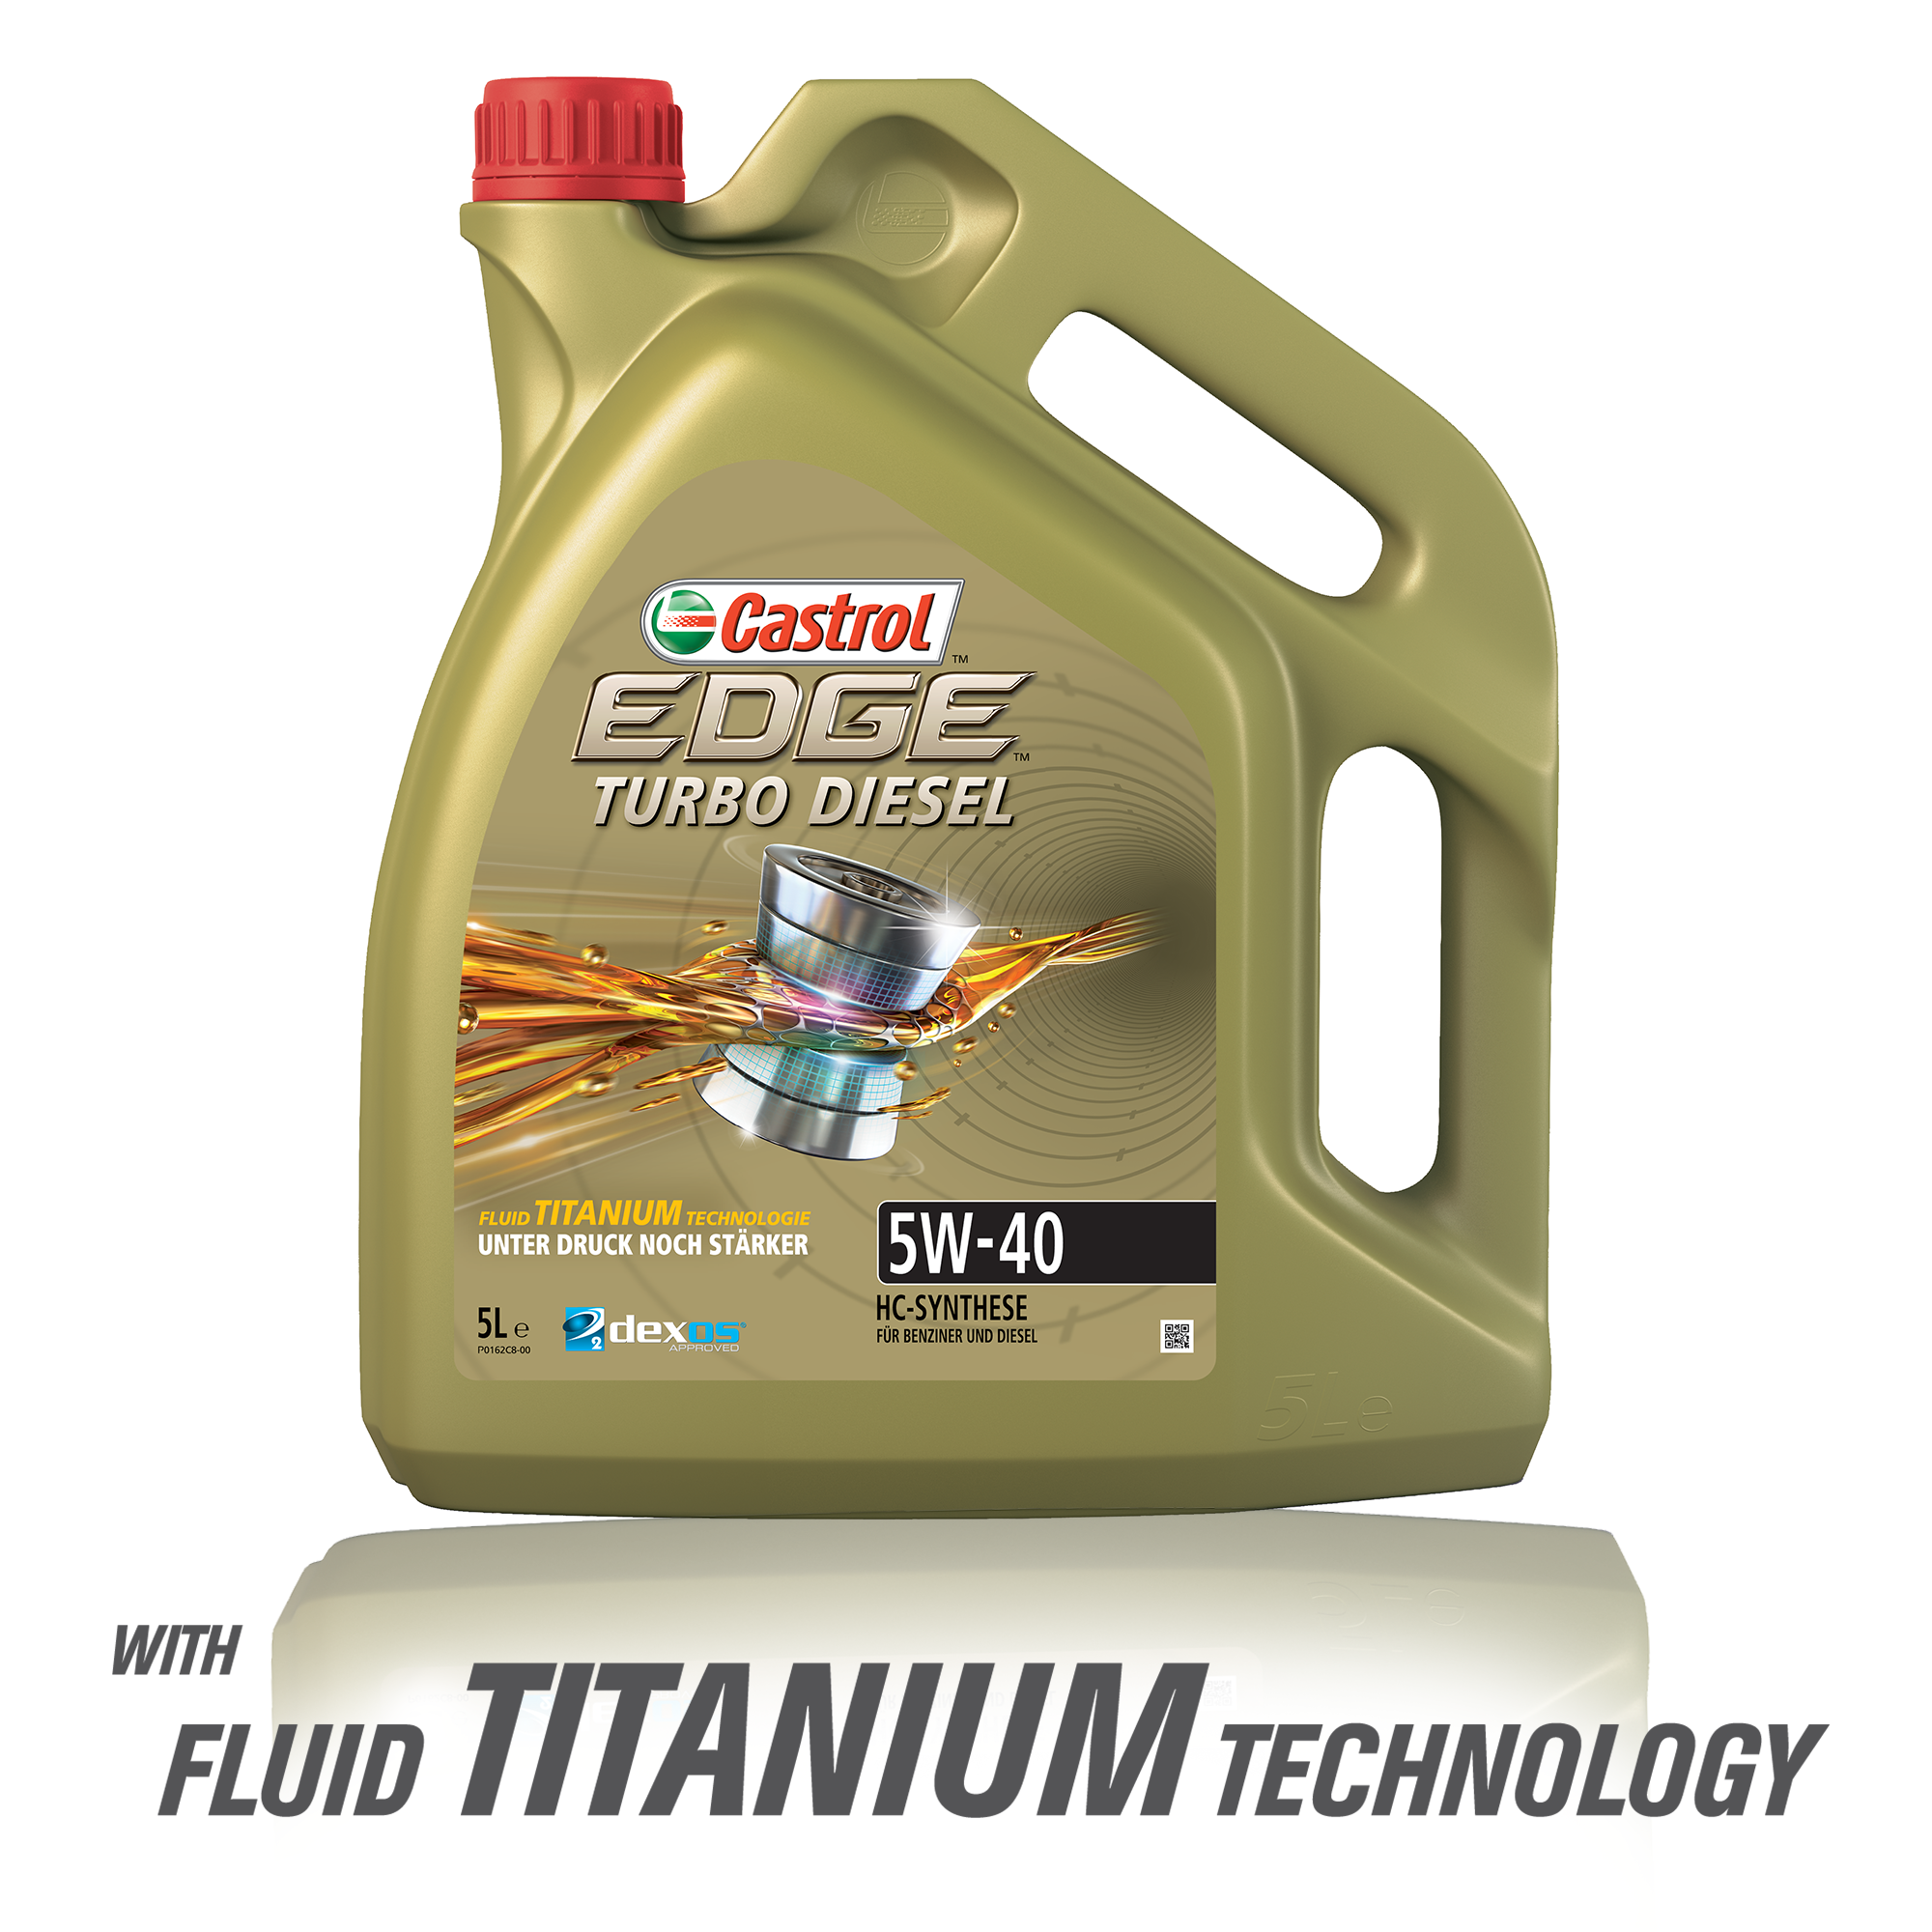 Castrol EDGE Turbo Diesel